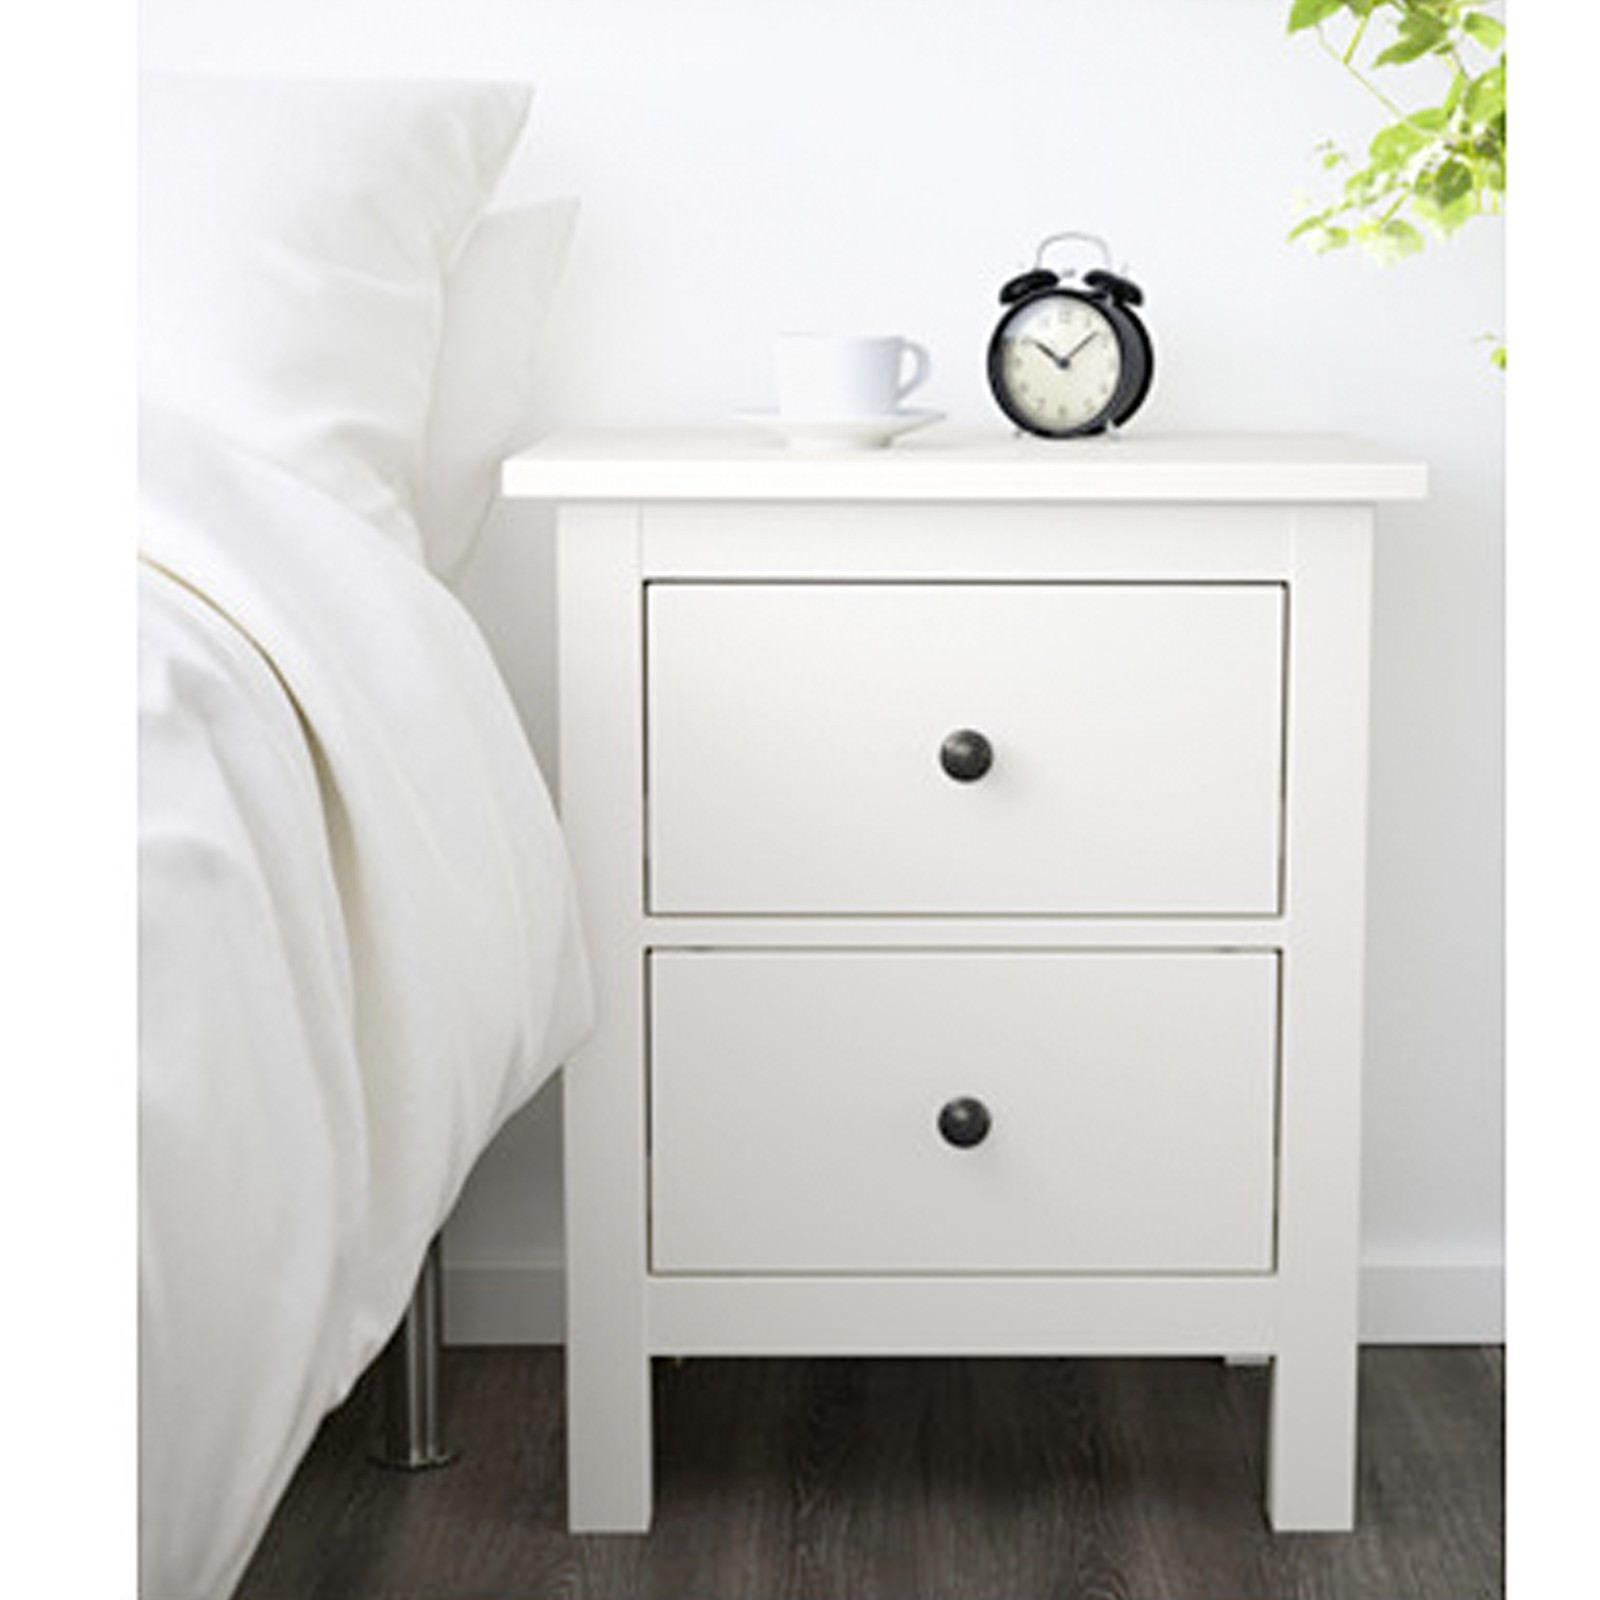 Ikea Table De Nuit pinfayth ioannidis on dorm | ikea nightstand, bedroom